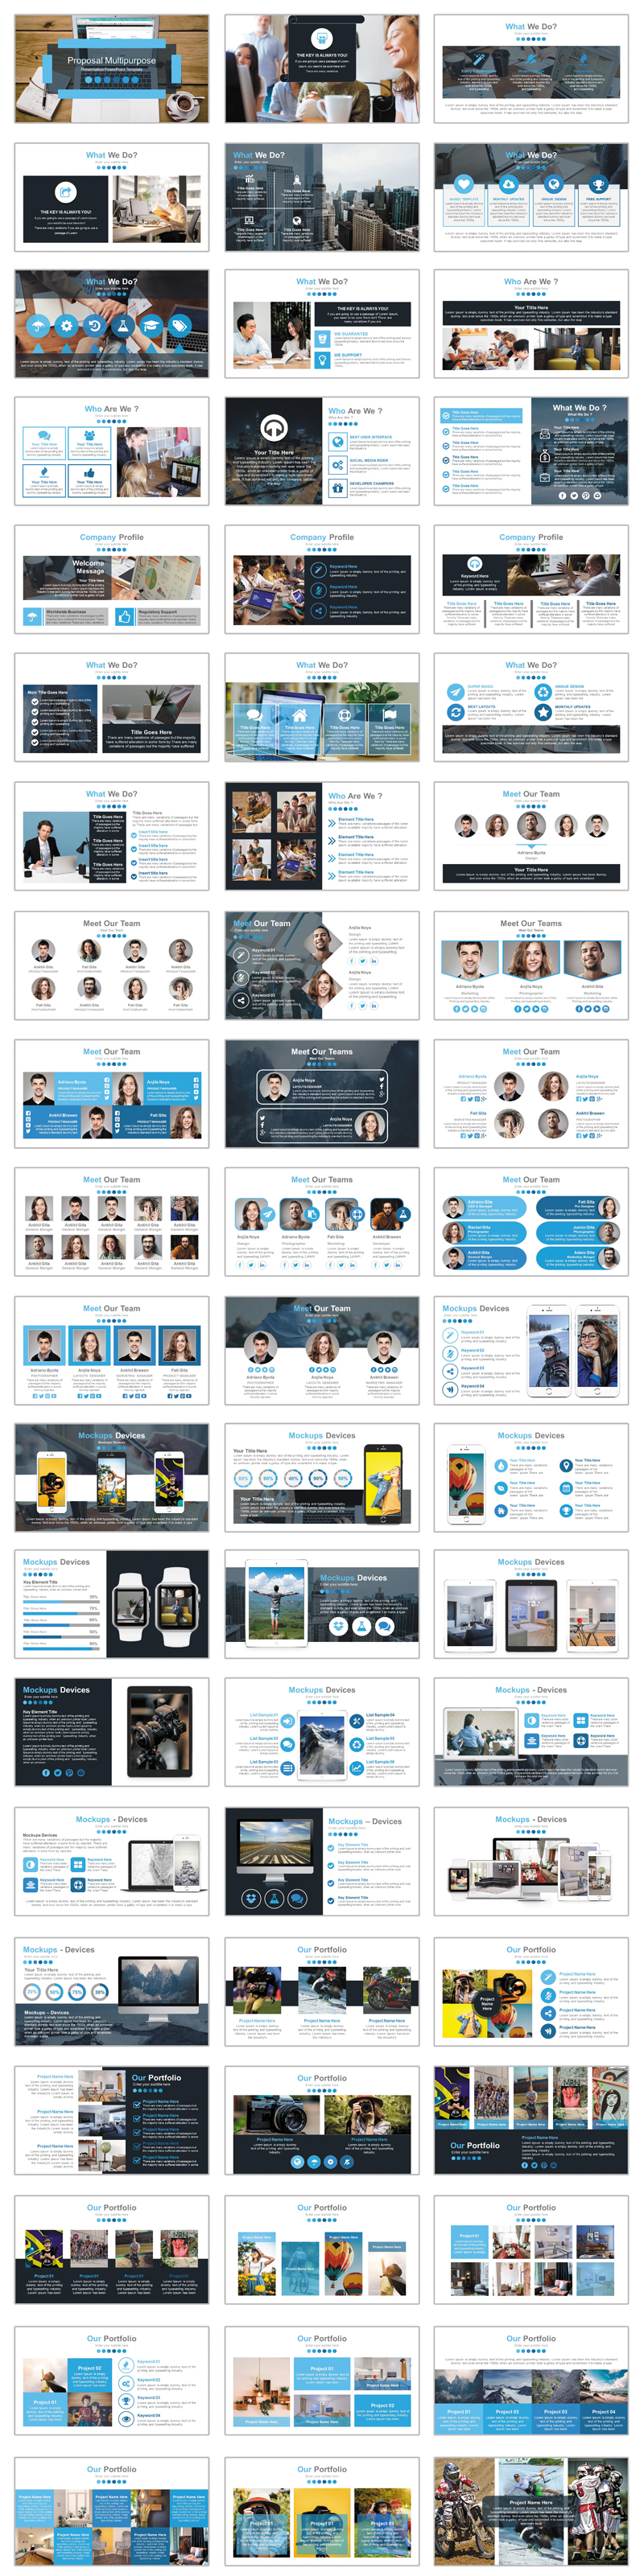 Marketing Solutions PowerPoint Template